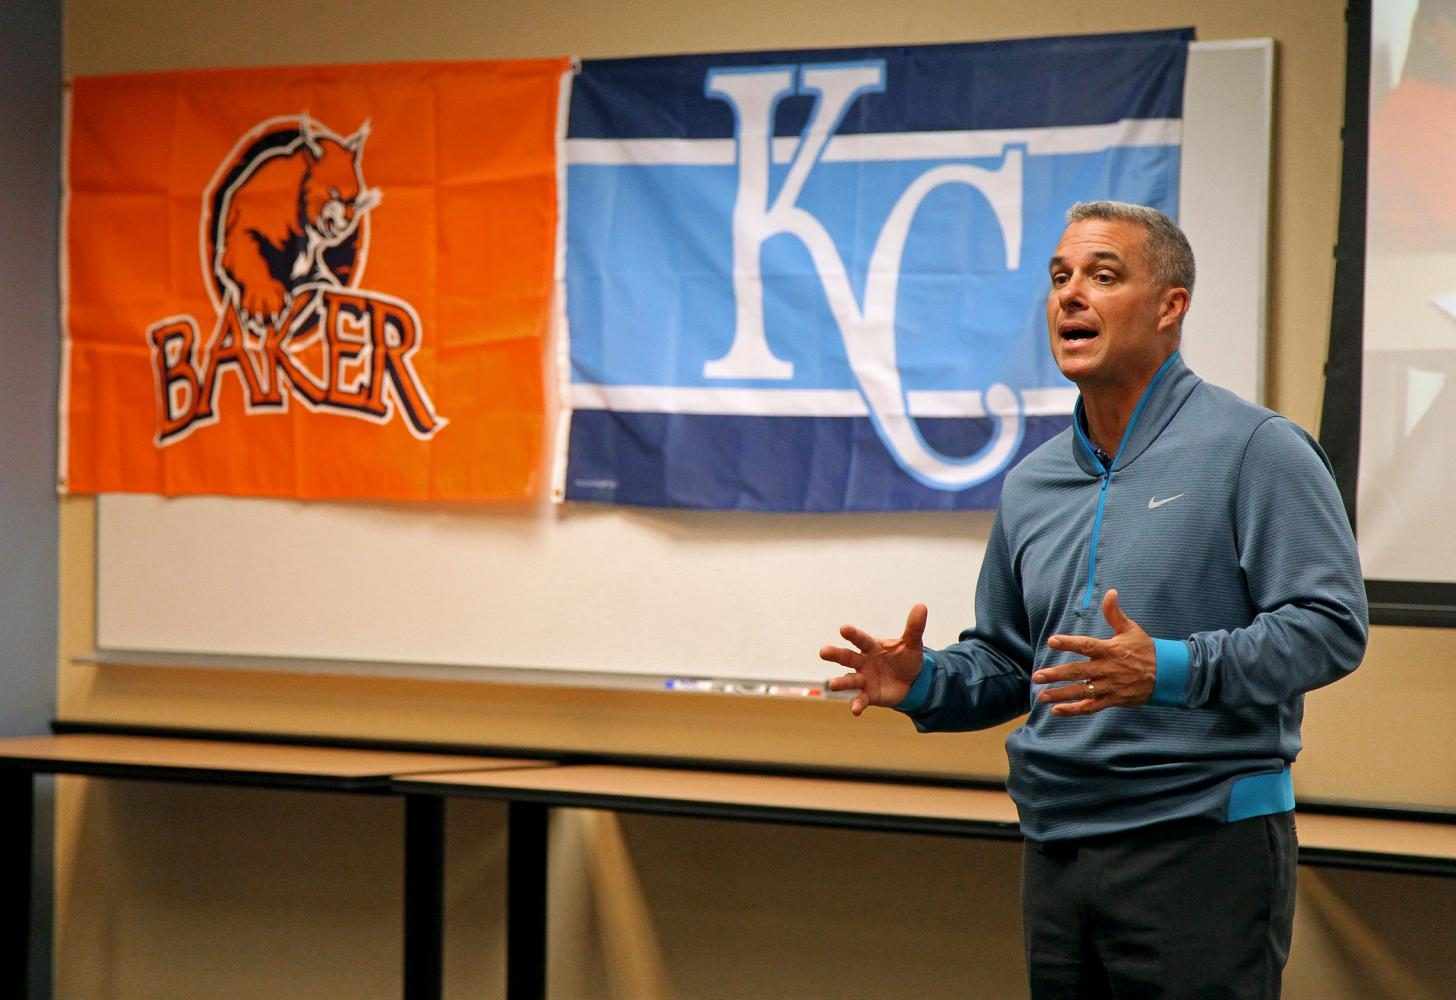 Kansas City Royals General Manager Dayton Moore discusses leadership ethics to a class on Feb. 10, 2016, at Bakers SPGS campus. The course is a part of Bakers new Doctor of Education in Educational Leadership program that started the previous August and features multiple guest speakers from the community. Because the Royals had just won the World Series the previous November, hearing their GM speak was fascinating and again reinforced how Baker consistently provides once-in-a-lifetime opportunities for its students.